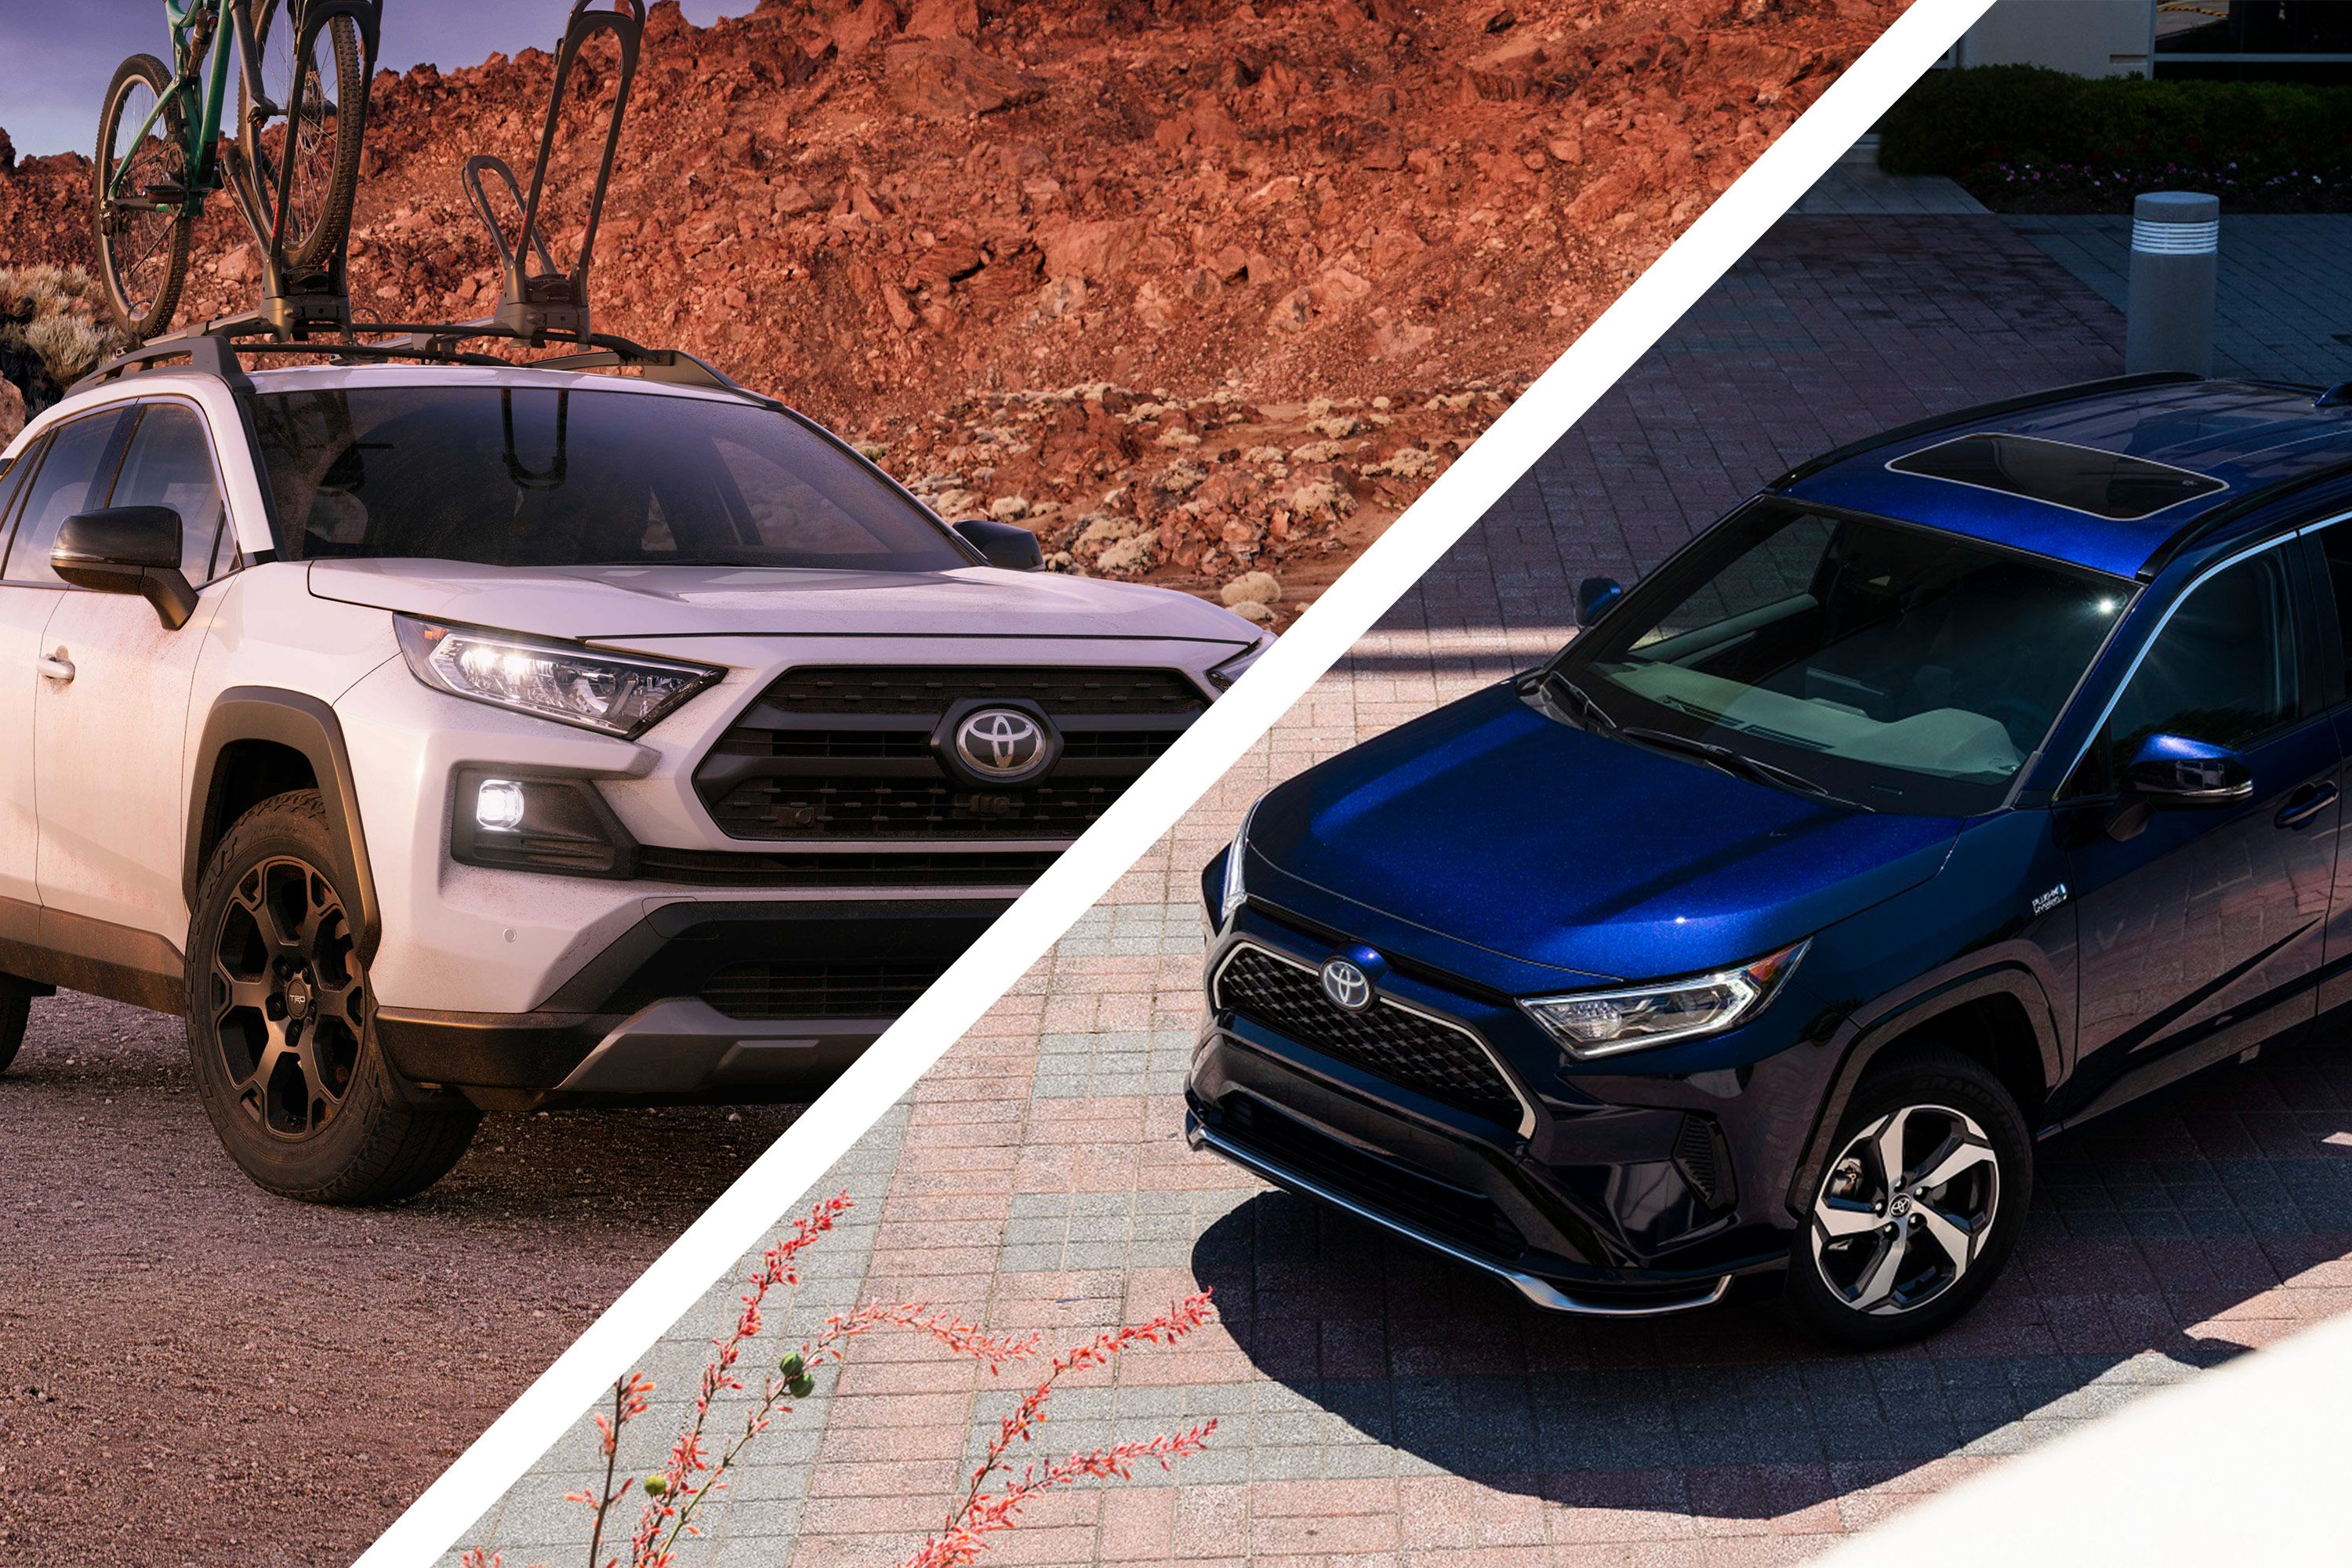 Which Toyota Rav4 Is The Better Buy The Rav4 Trd Off Road Or The Rav4 Prime